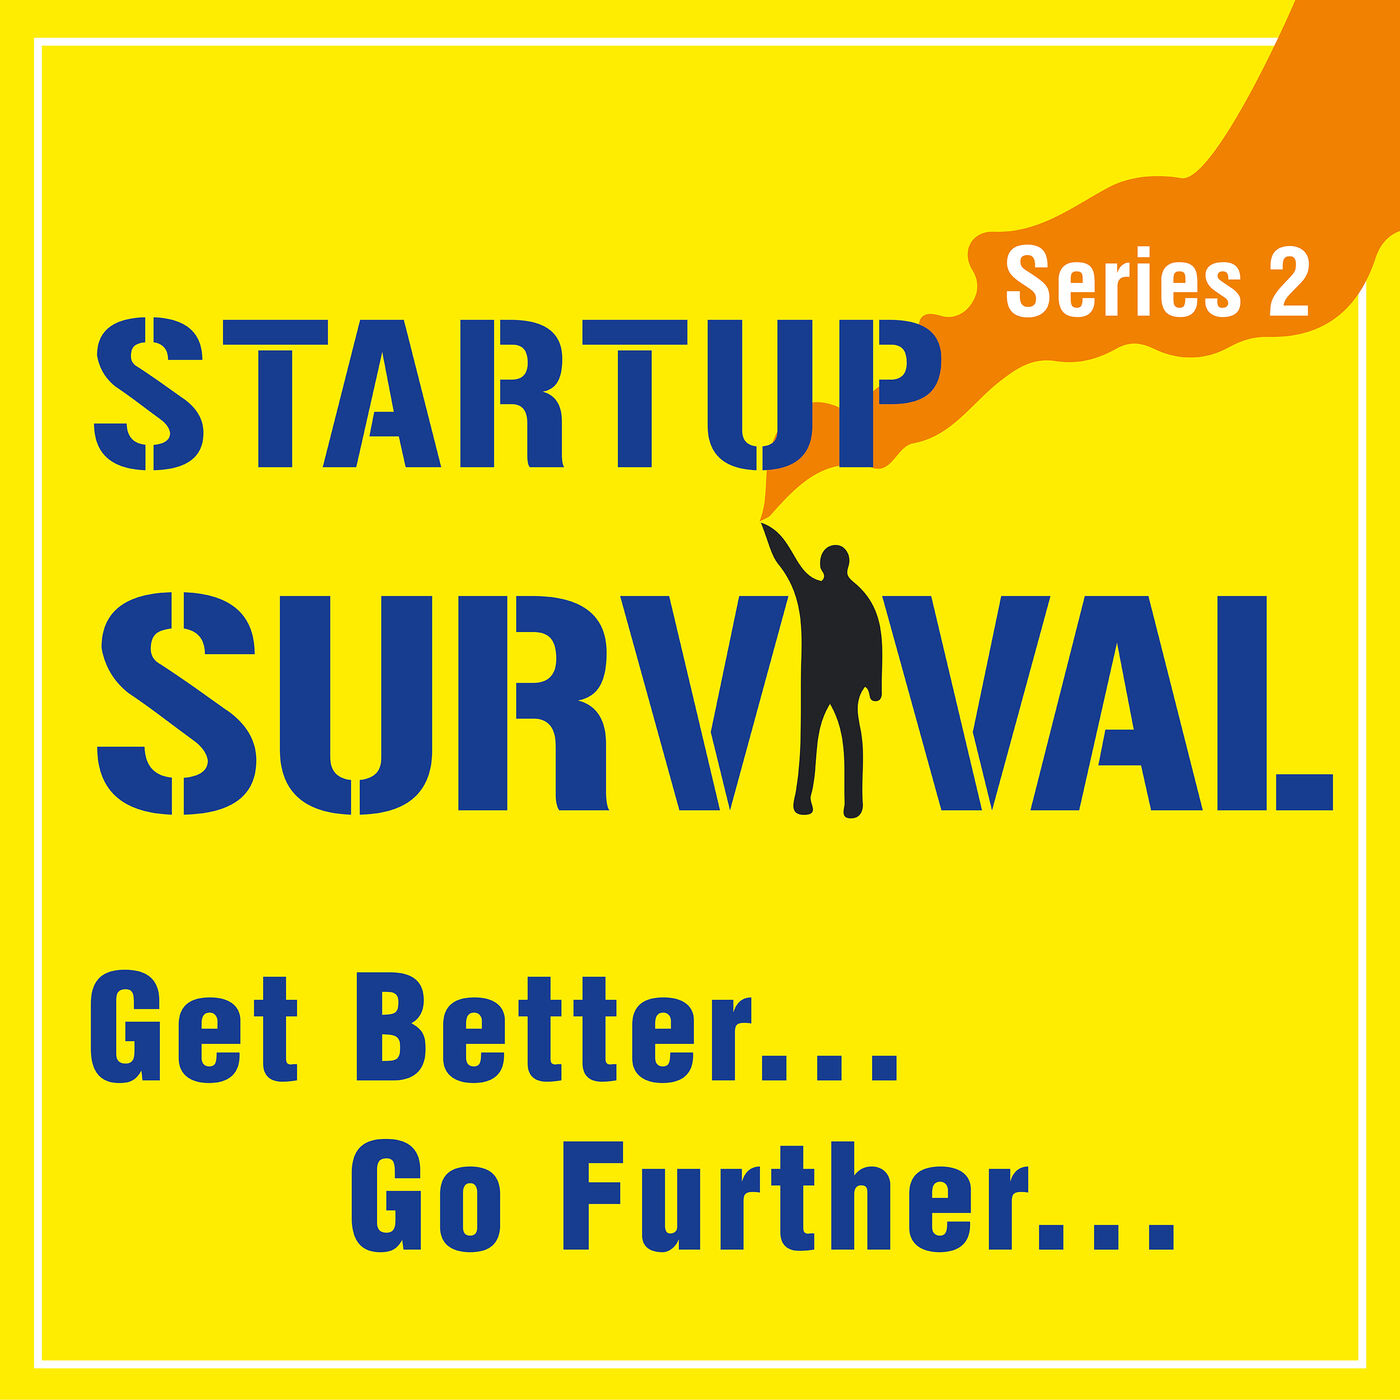 Episode 4 - Case Story: Stitching Entrepreneurial Life Together